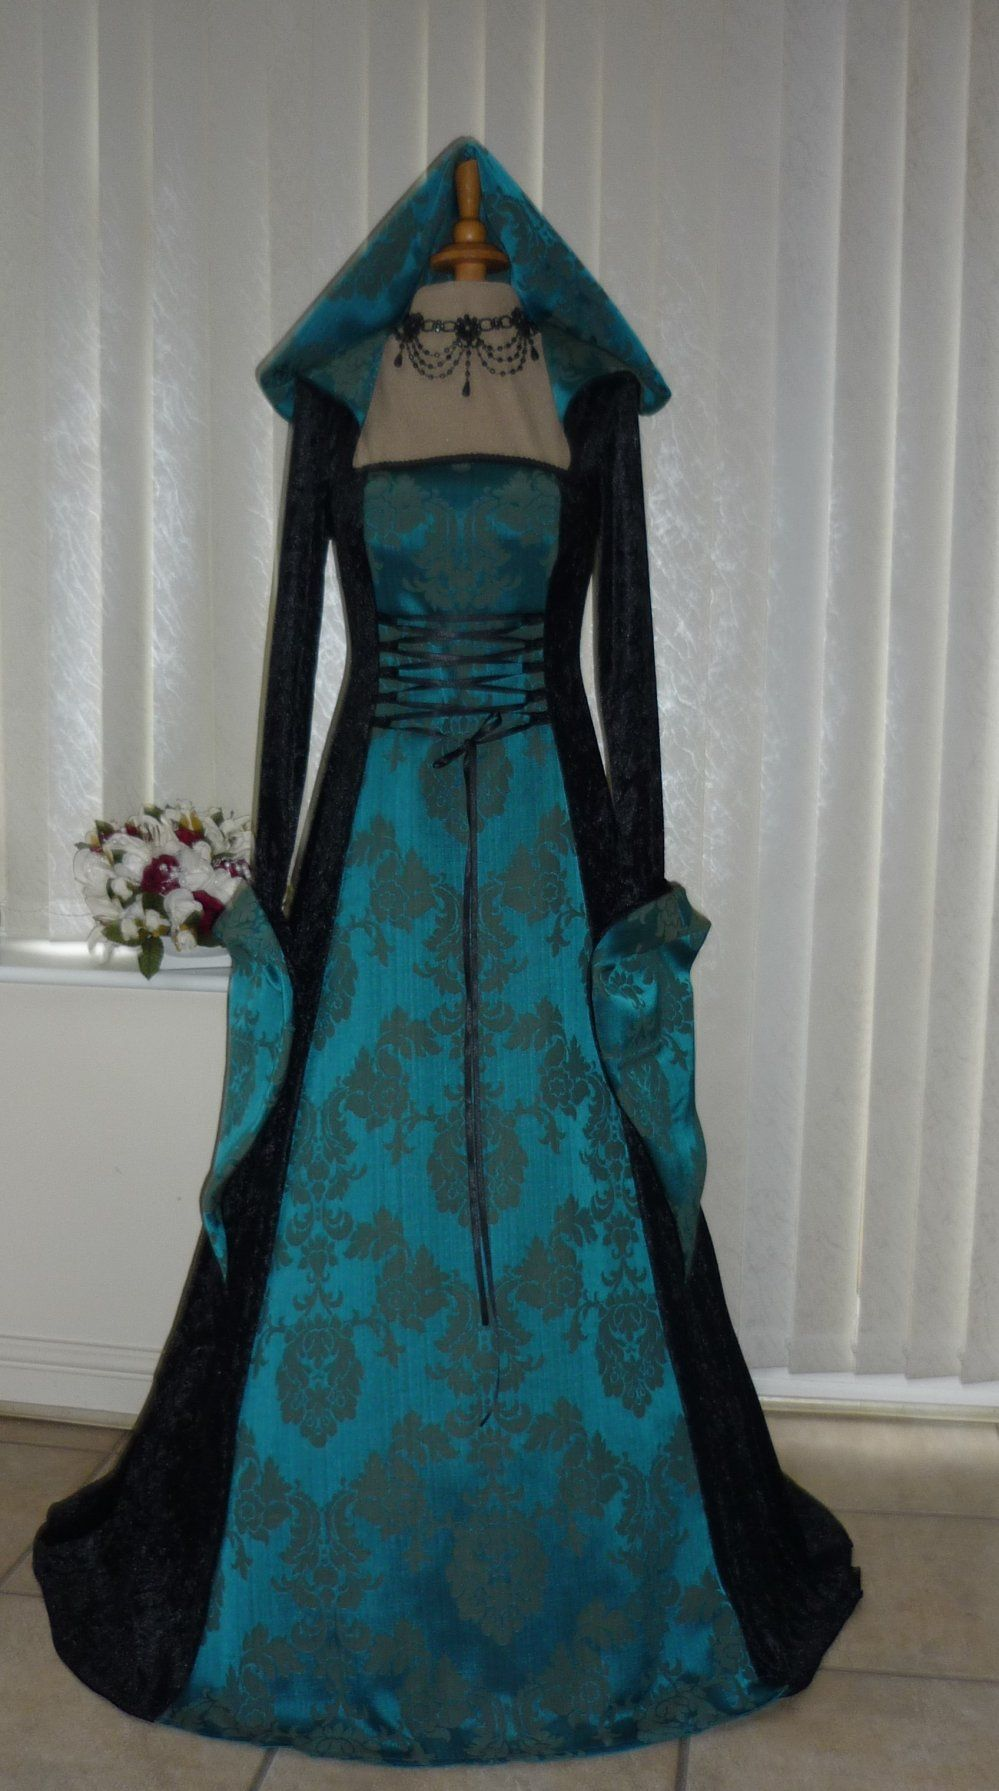 Medieval Gothic Renaissance Hooded Dress Black & Teal, Dawns ...